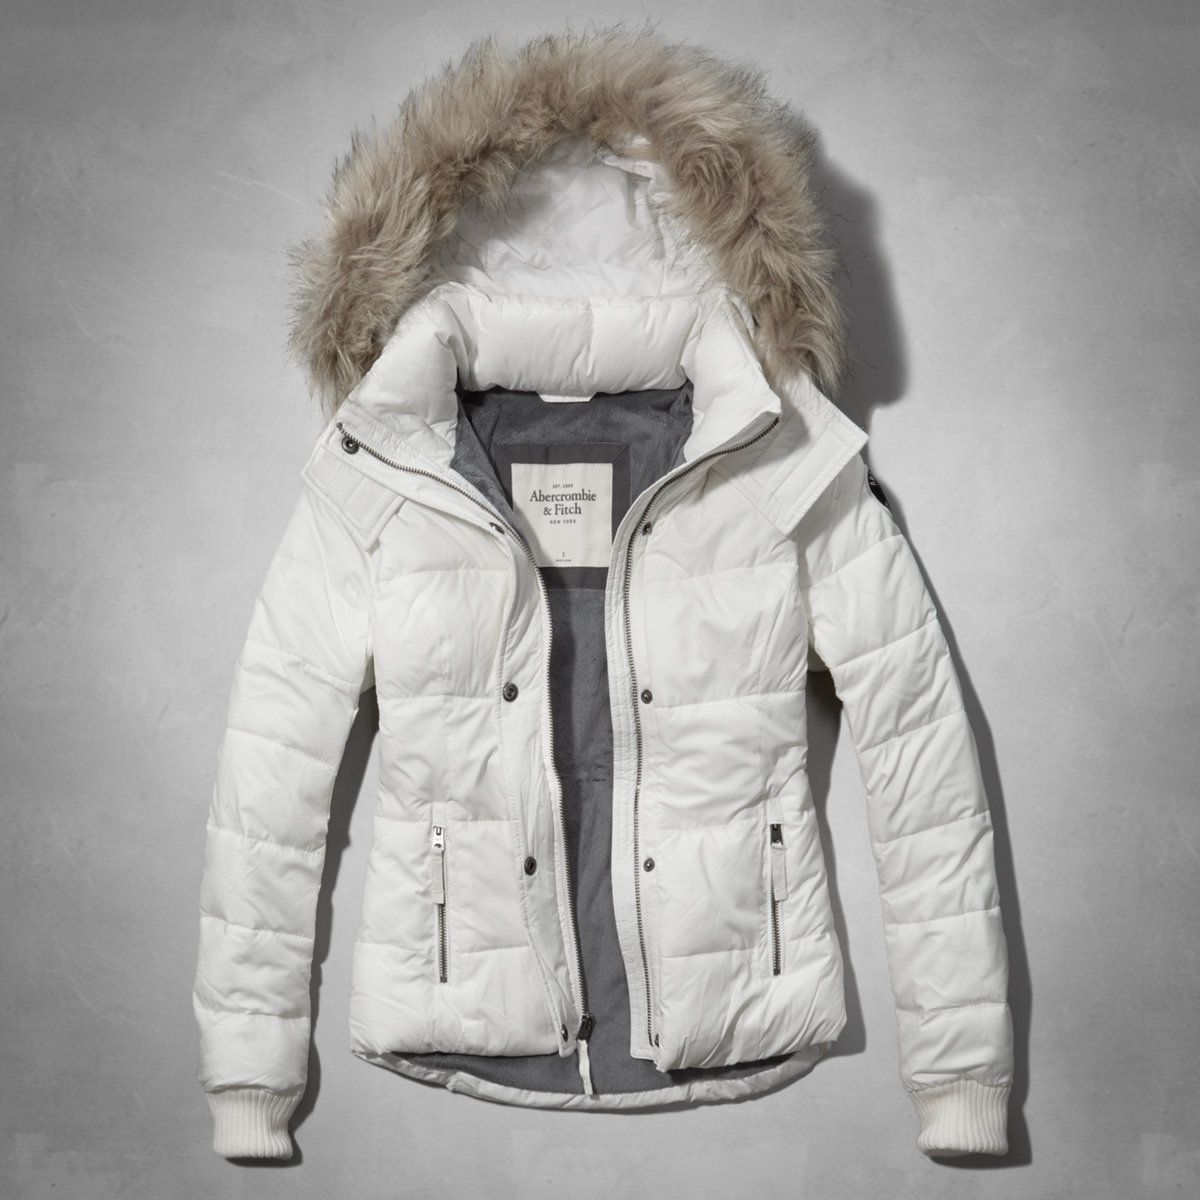 Womens A&F White Classic Puffer Jacket with Fur Trimmed Hood | Womens New  Arrivals | Abercrombie